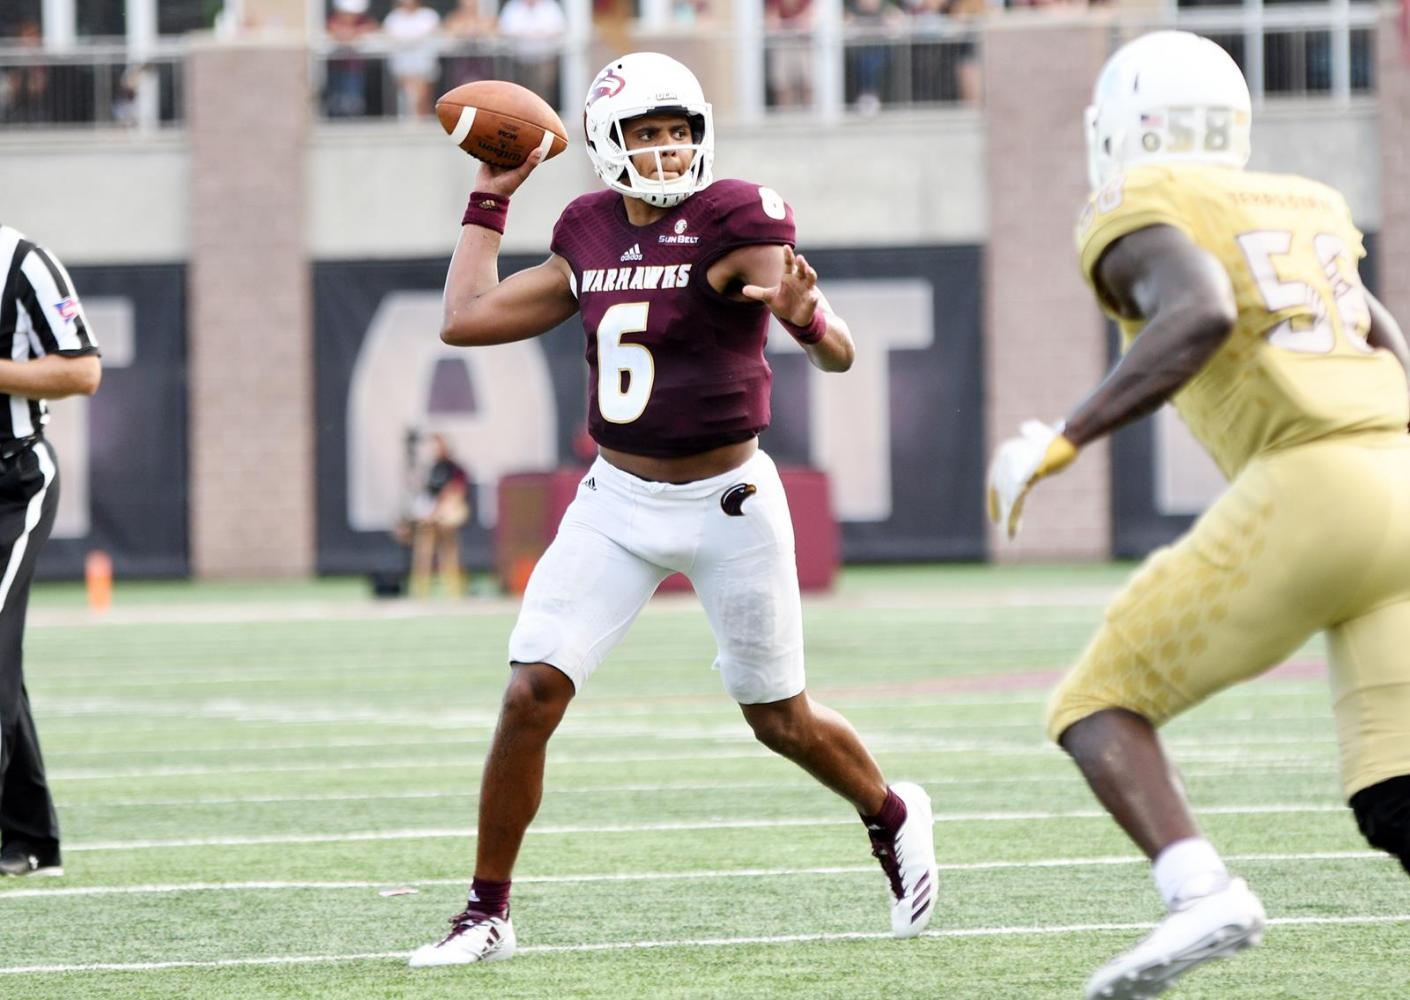 PASS IT: Caleb Evans thows a past in football's game against Texas State on Saturday.